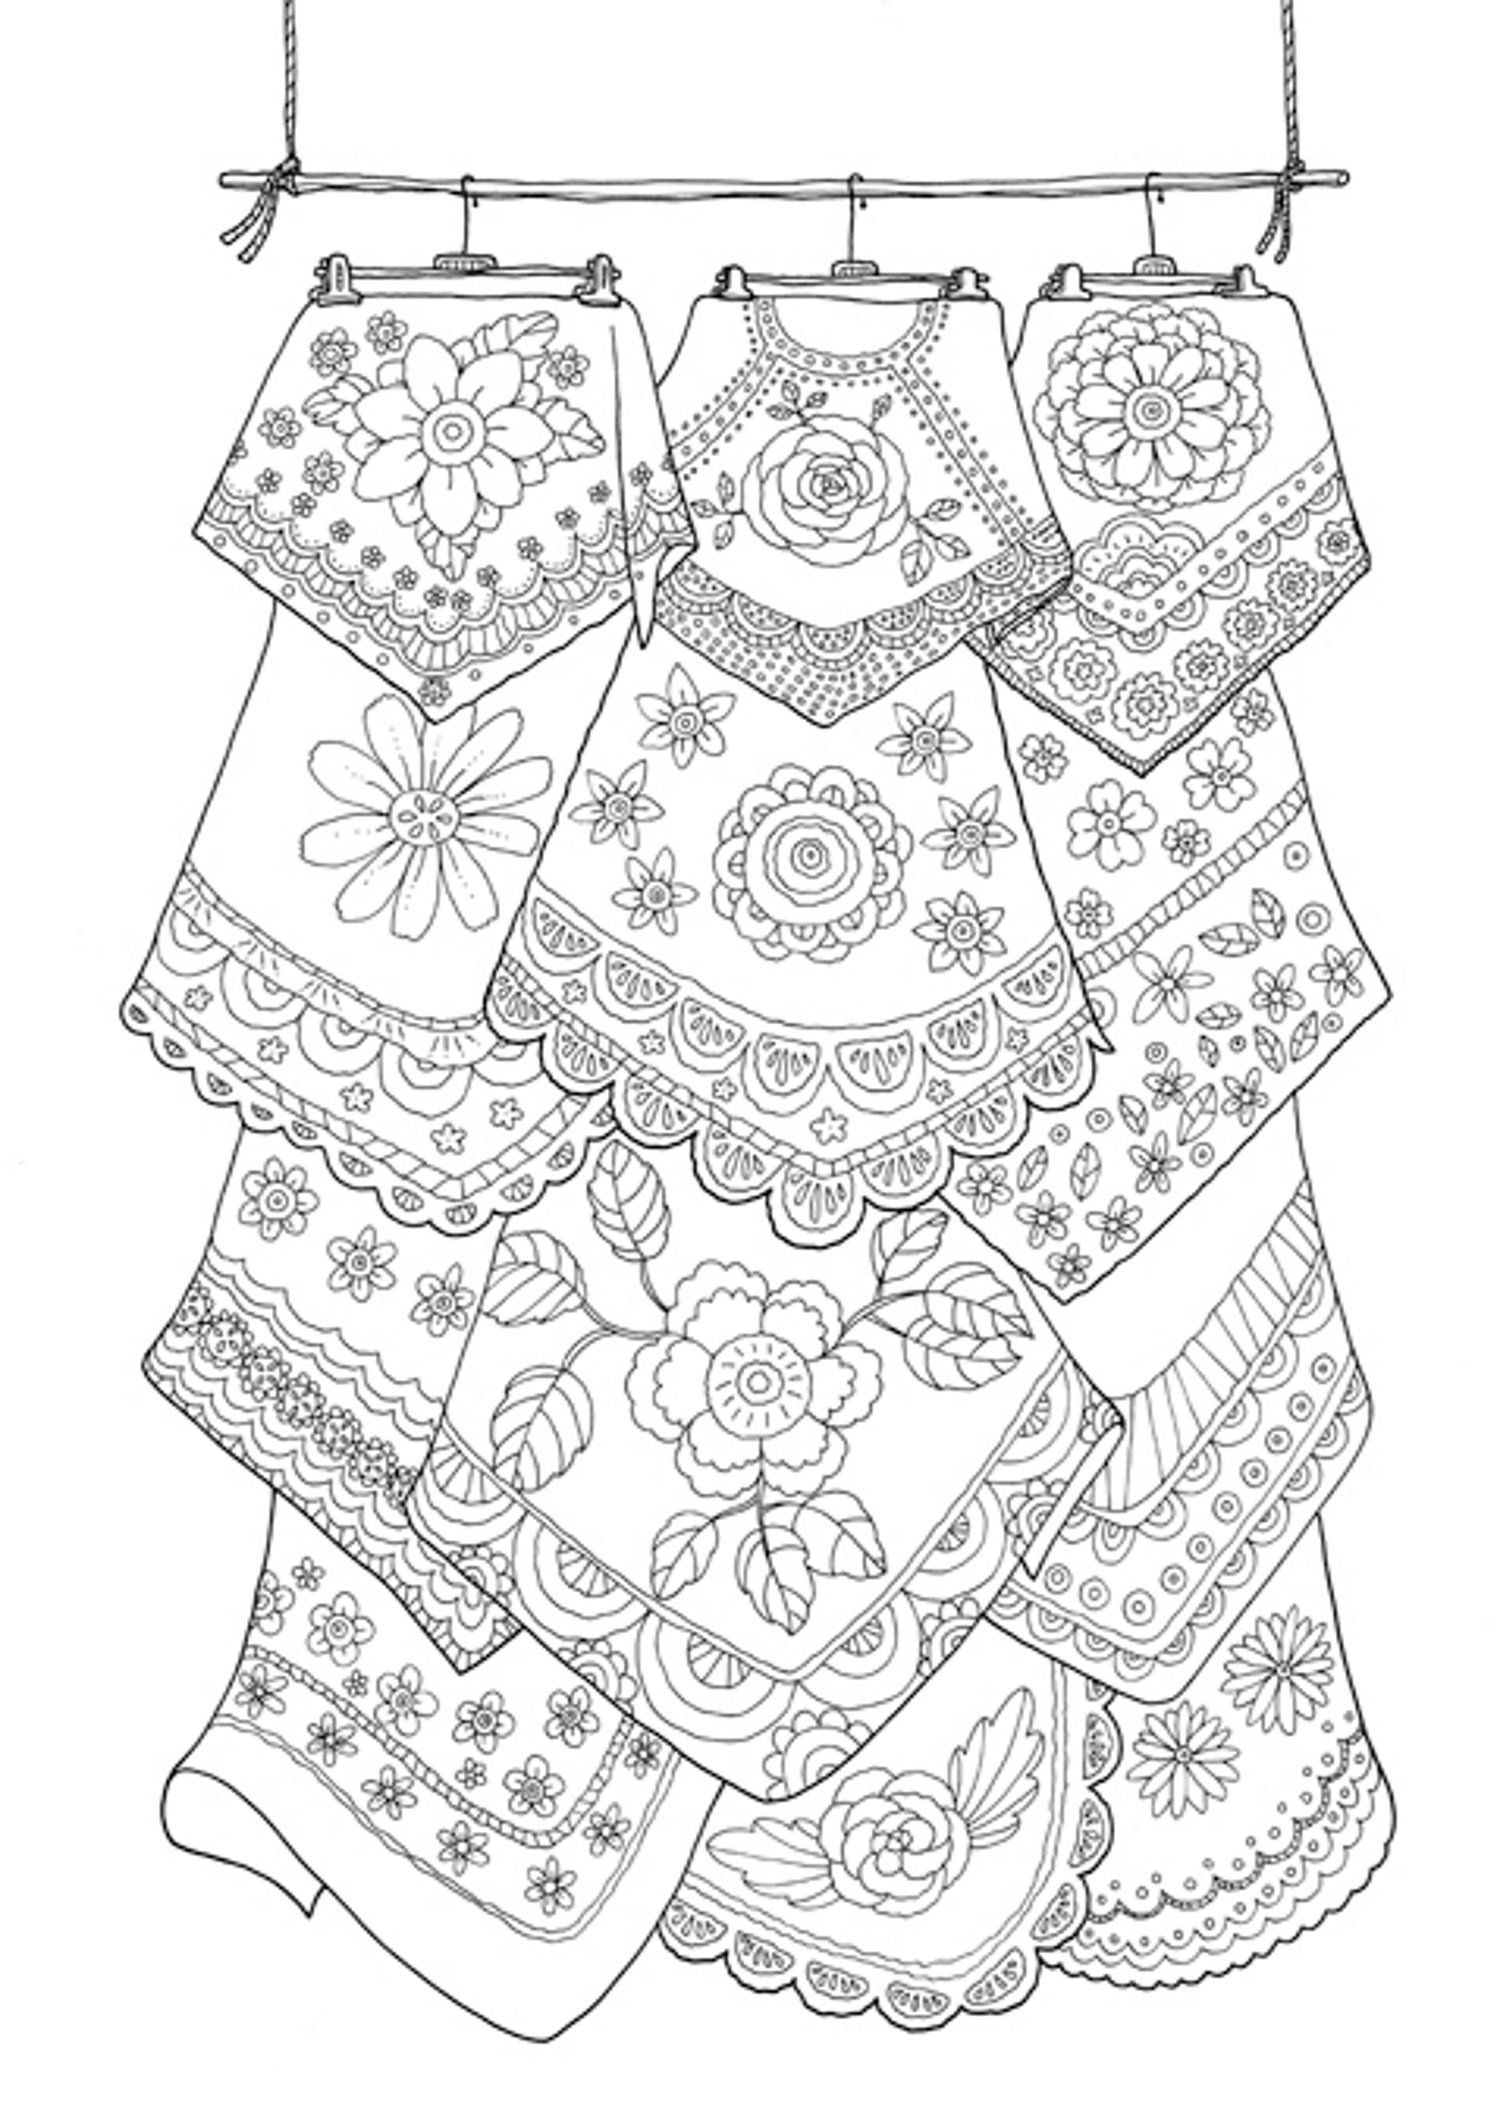 Pin On My Haven For Coloring Pages